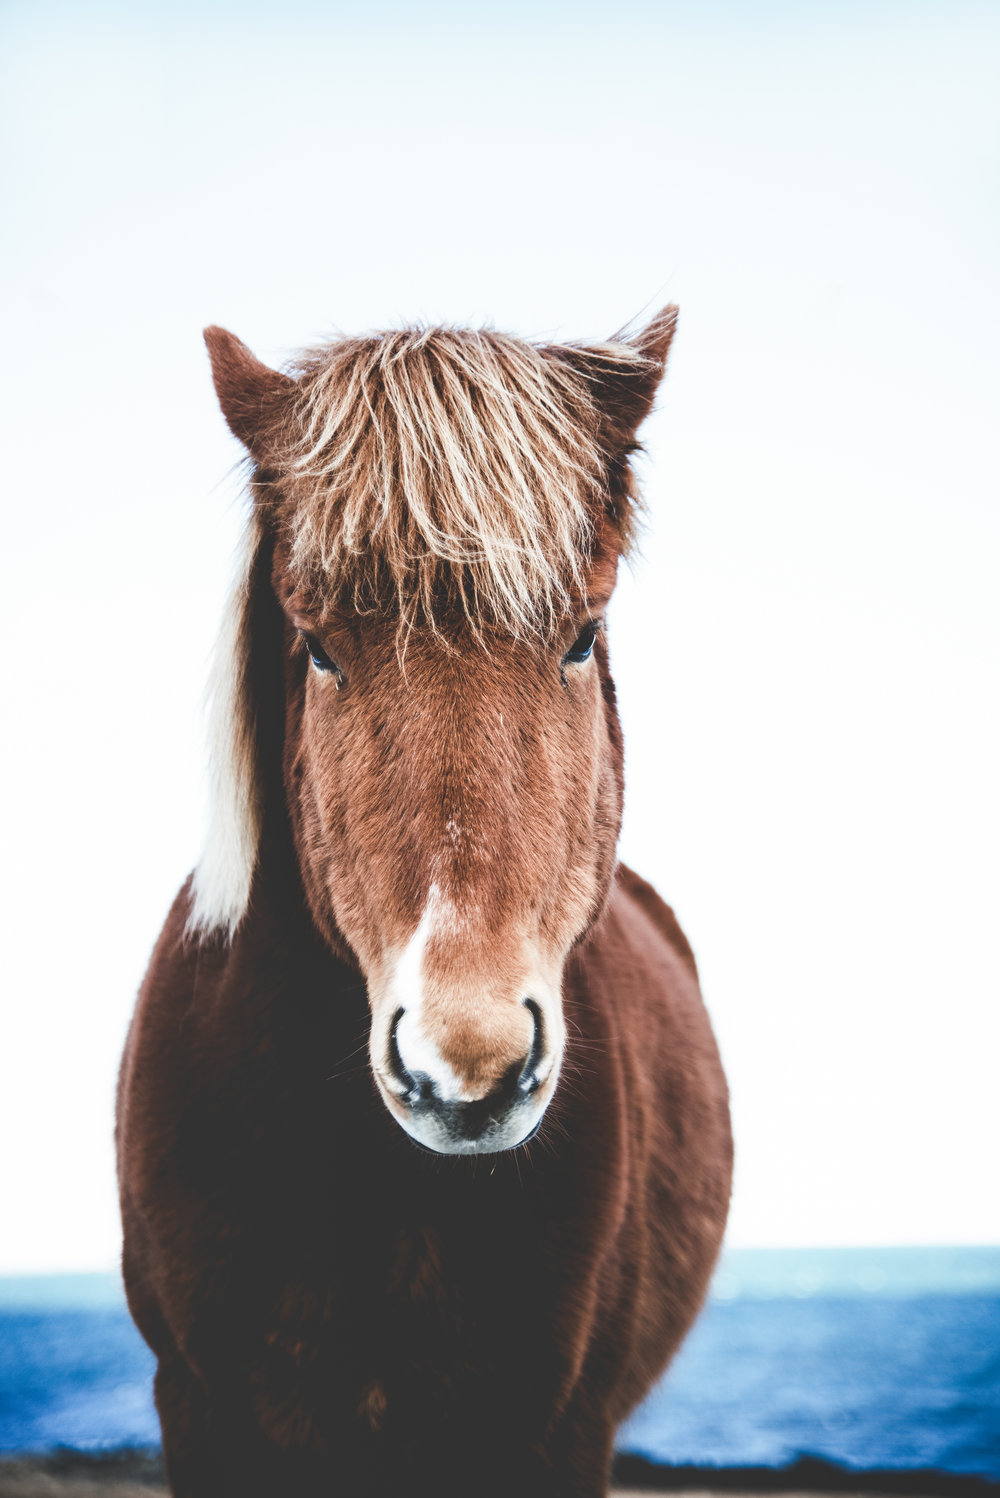 Icelandic Horse Portrait in the West Fjords in Iceland.jpg